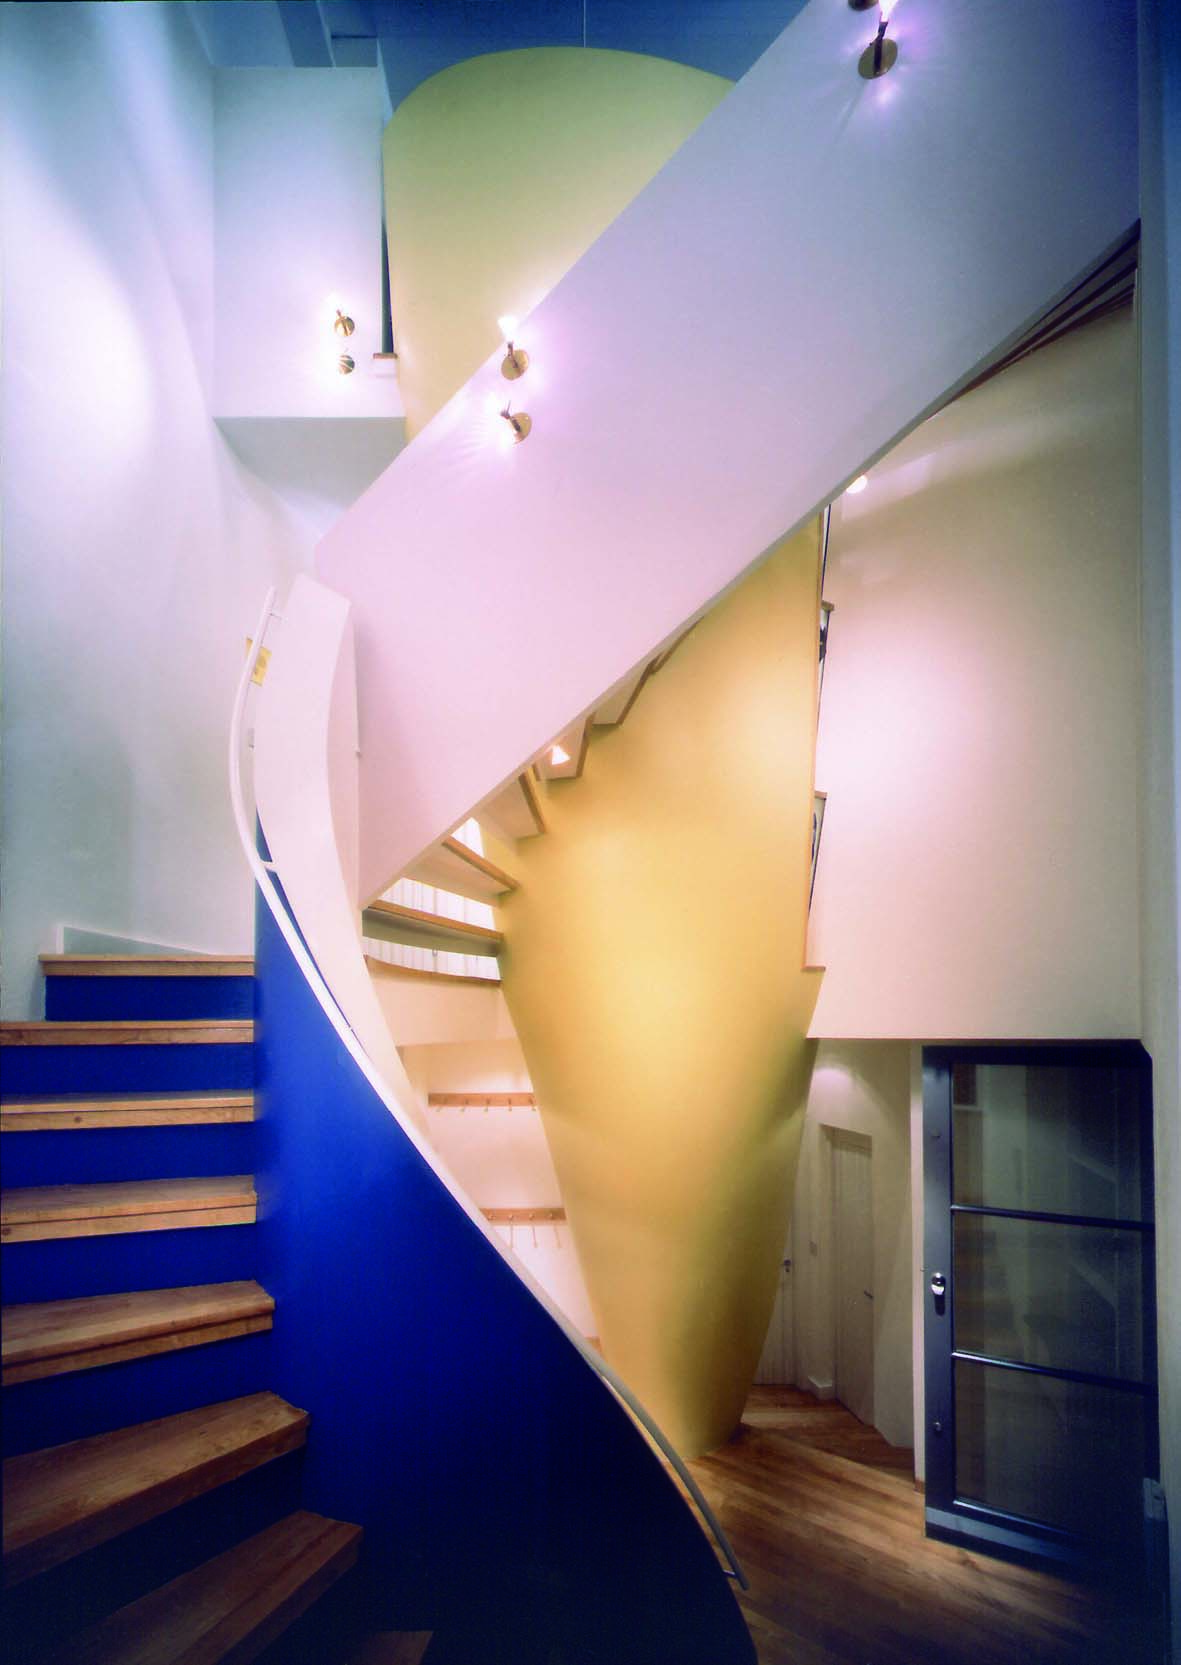 Colourful spiral staircase in 29 Doughty Mews by Ash Sakula Architects